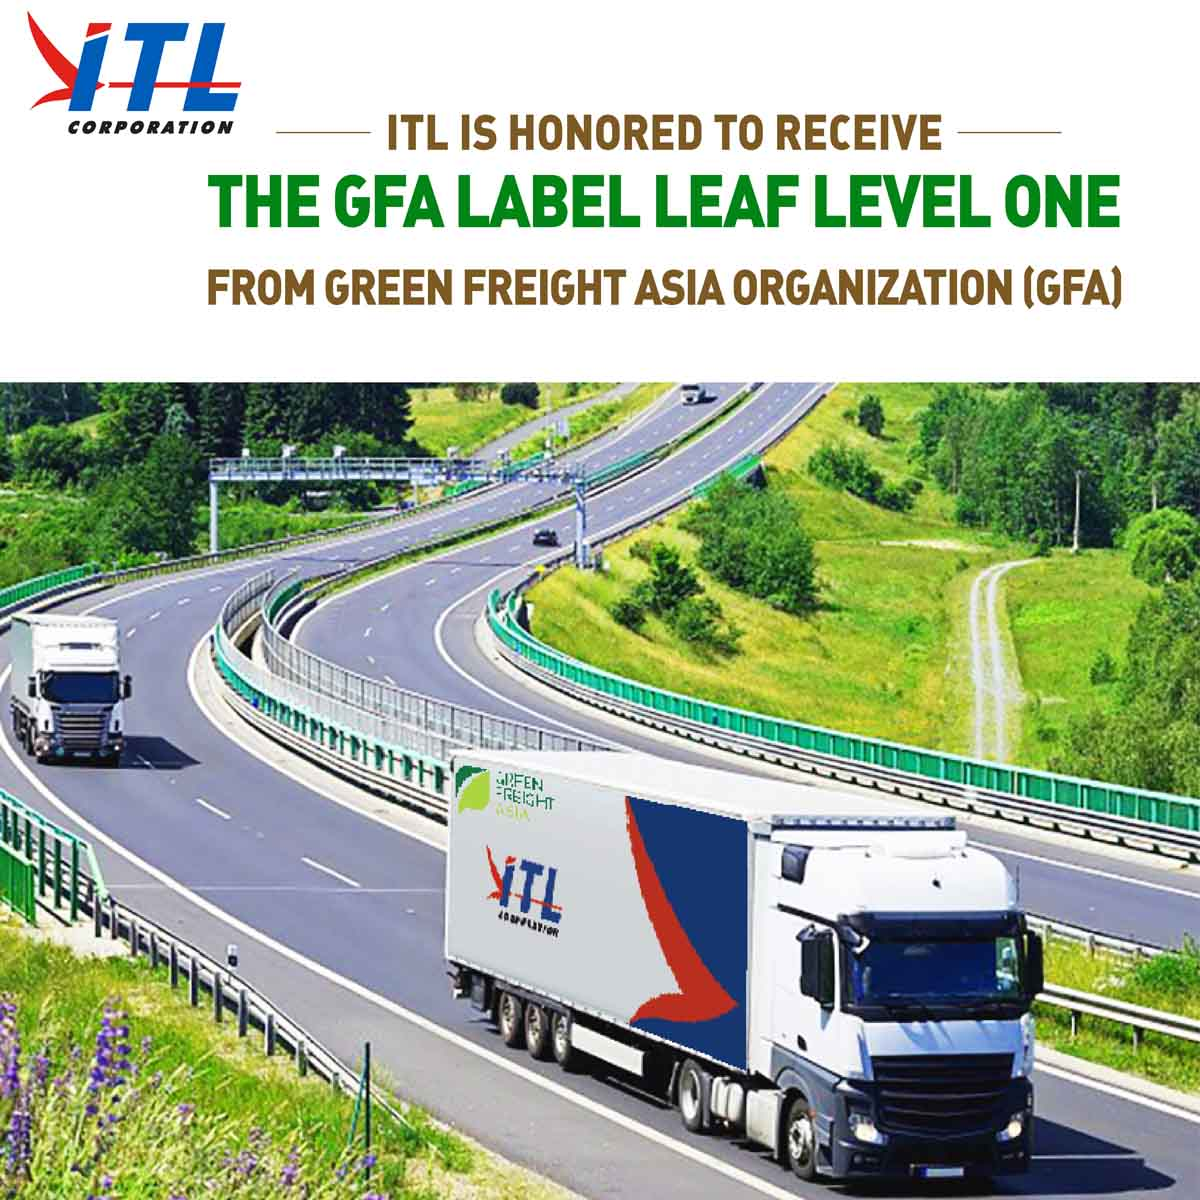 ITL IS HONORED TO RECEIVE THE GFA LABEL LEAF LEVEL ONE FROM GREEN FREIGHT ASIA ORGANIZATION (GFA)